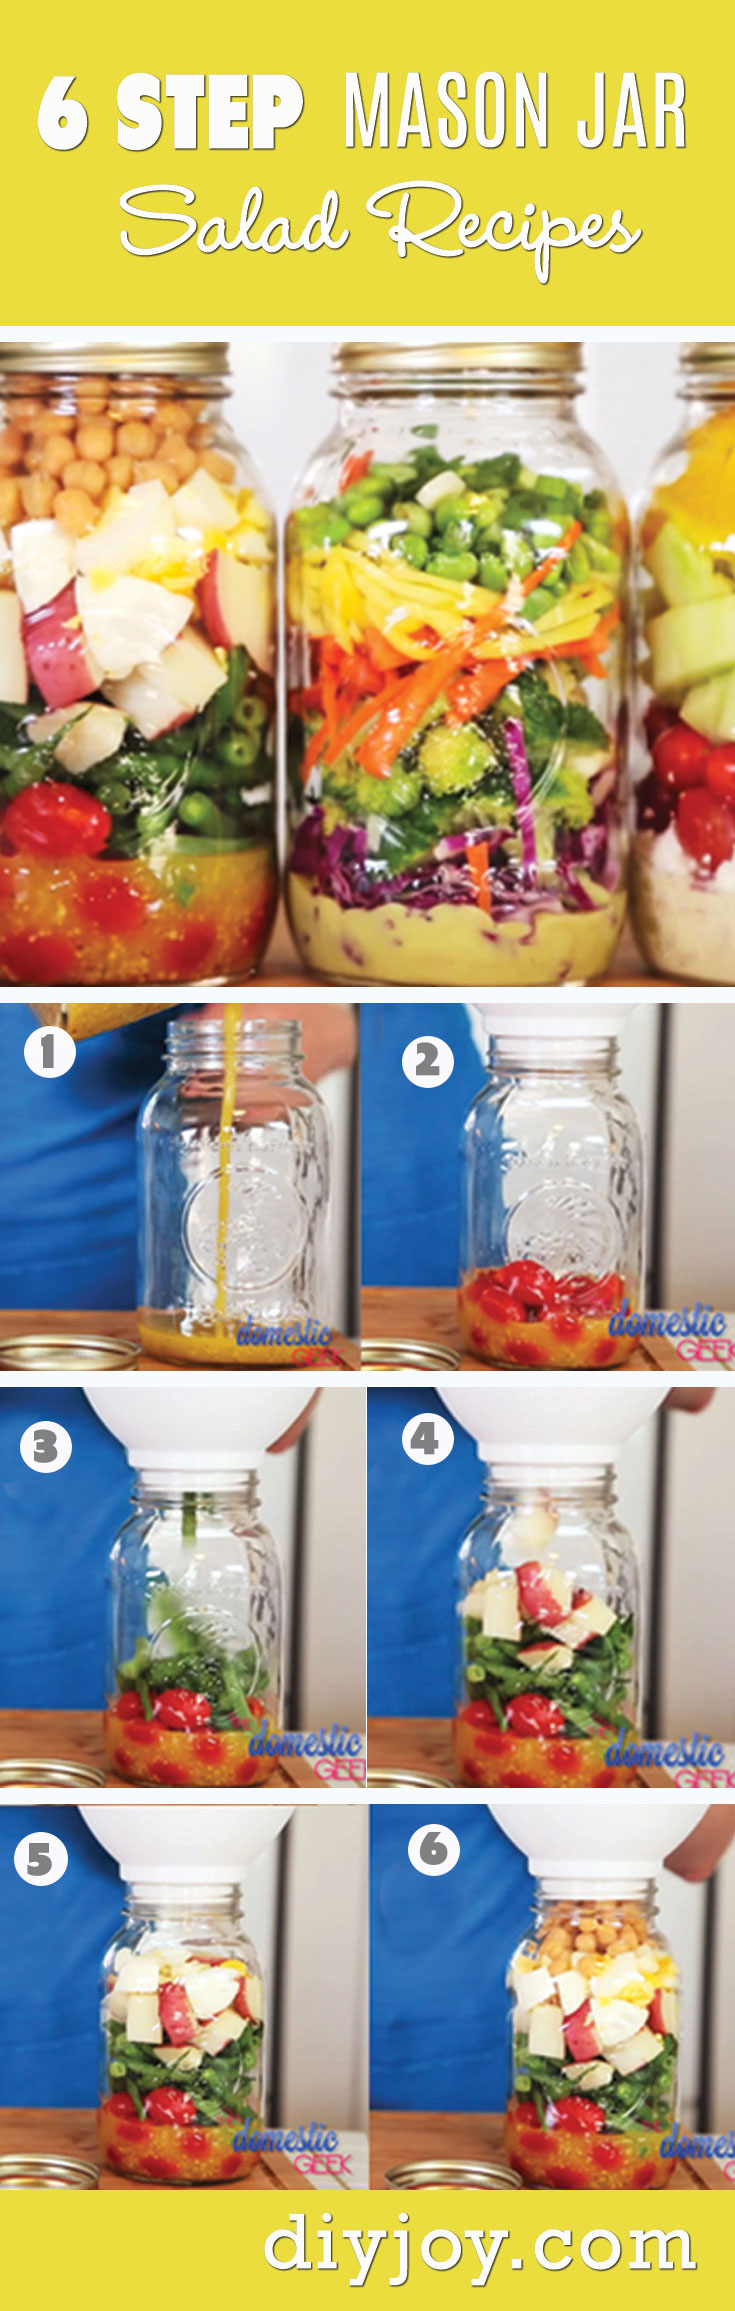 Mason Jar Salad Recipes - Recipes in A Jar and Easy Lunch Ideas at http://diyjoy.com/mason-jar-salad-recipes-in-a-jar